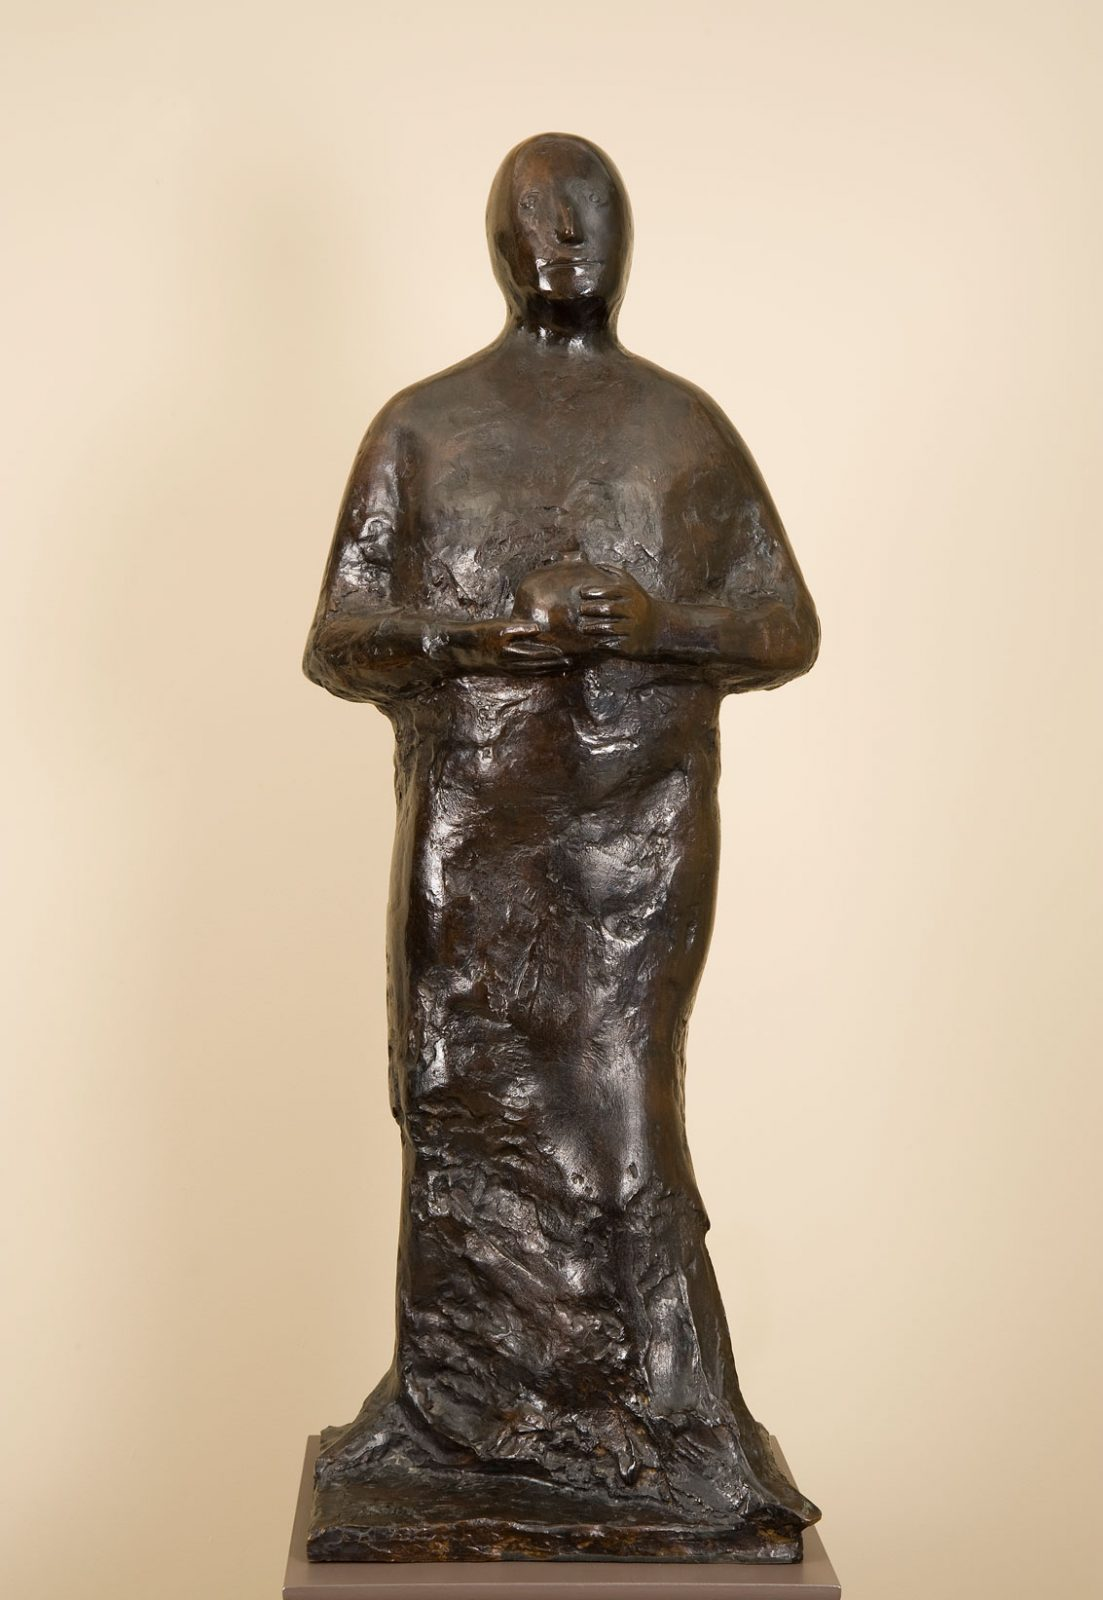 This bronze by Leonard Baskin shows a standing man holding a pomegranate with two hands